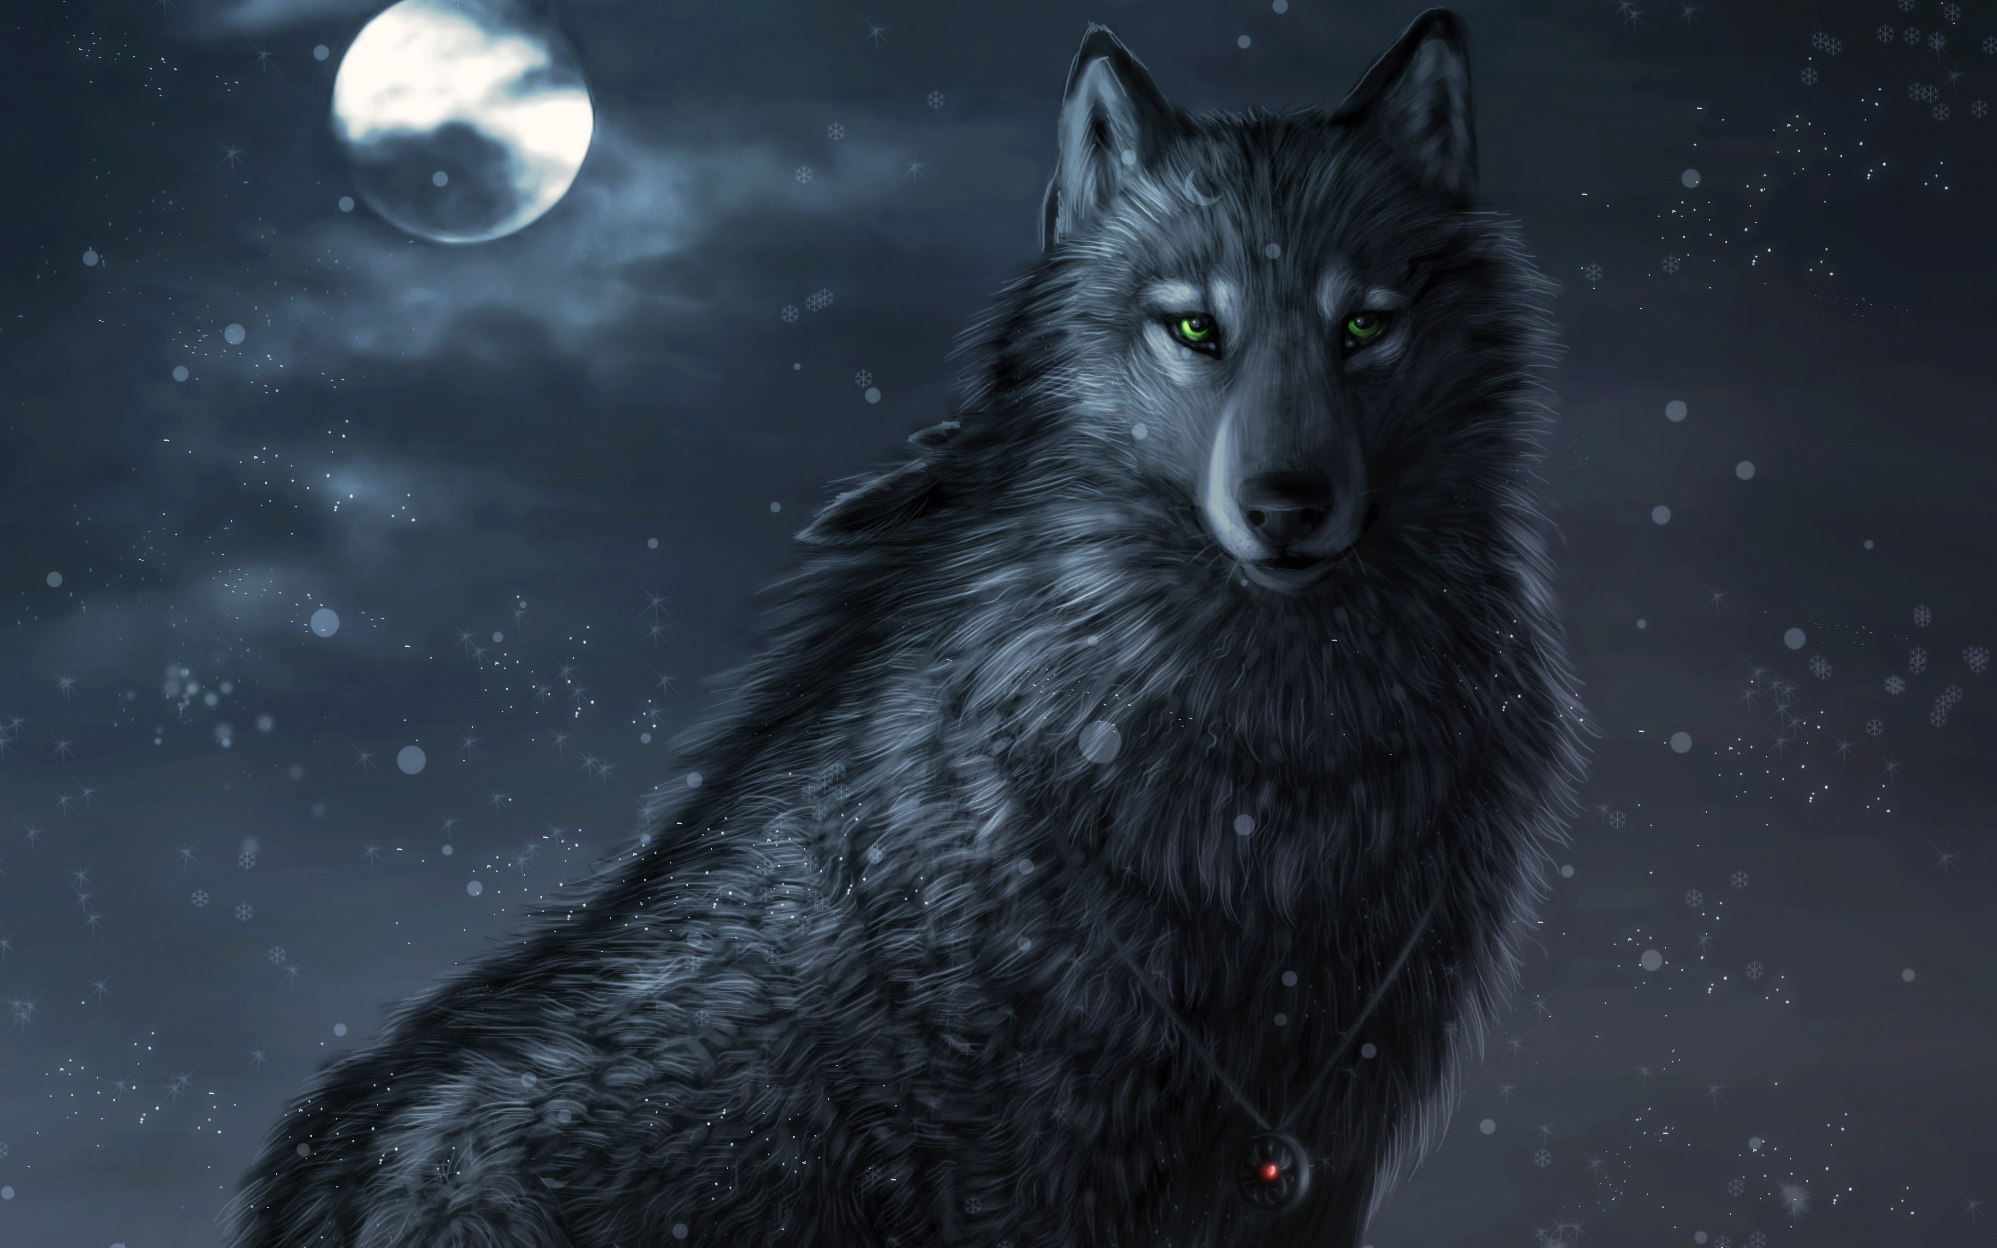 Wolf Computer Wallpapers Desktop Backgrounds 1997x1248 ID229738 1997x1248